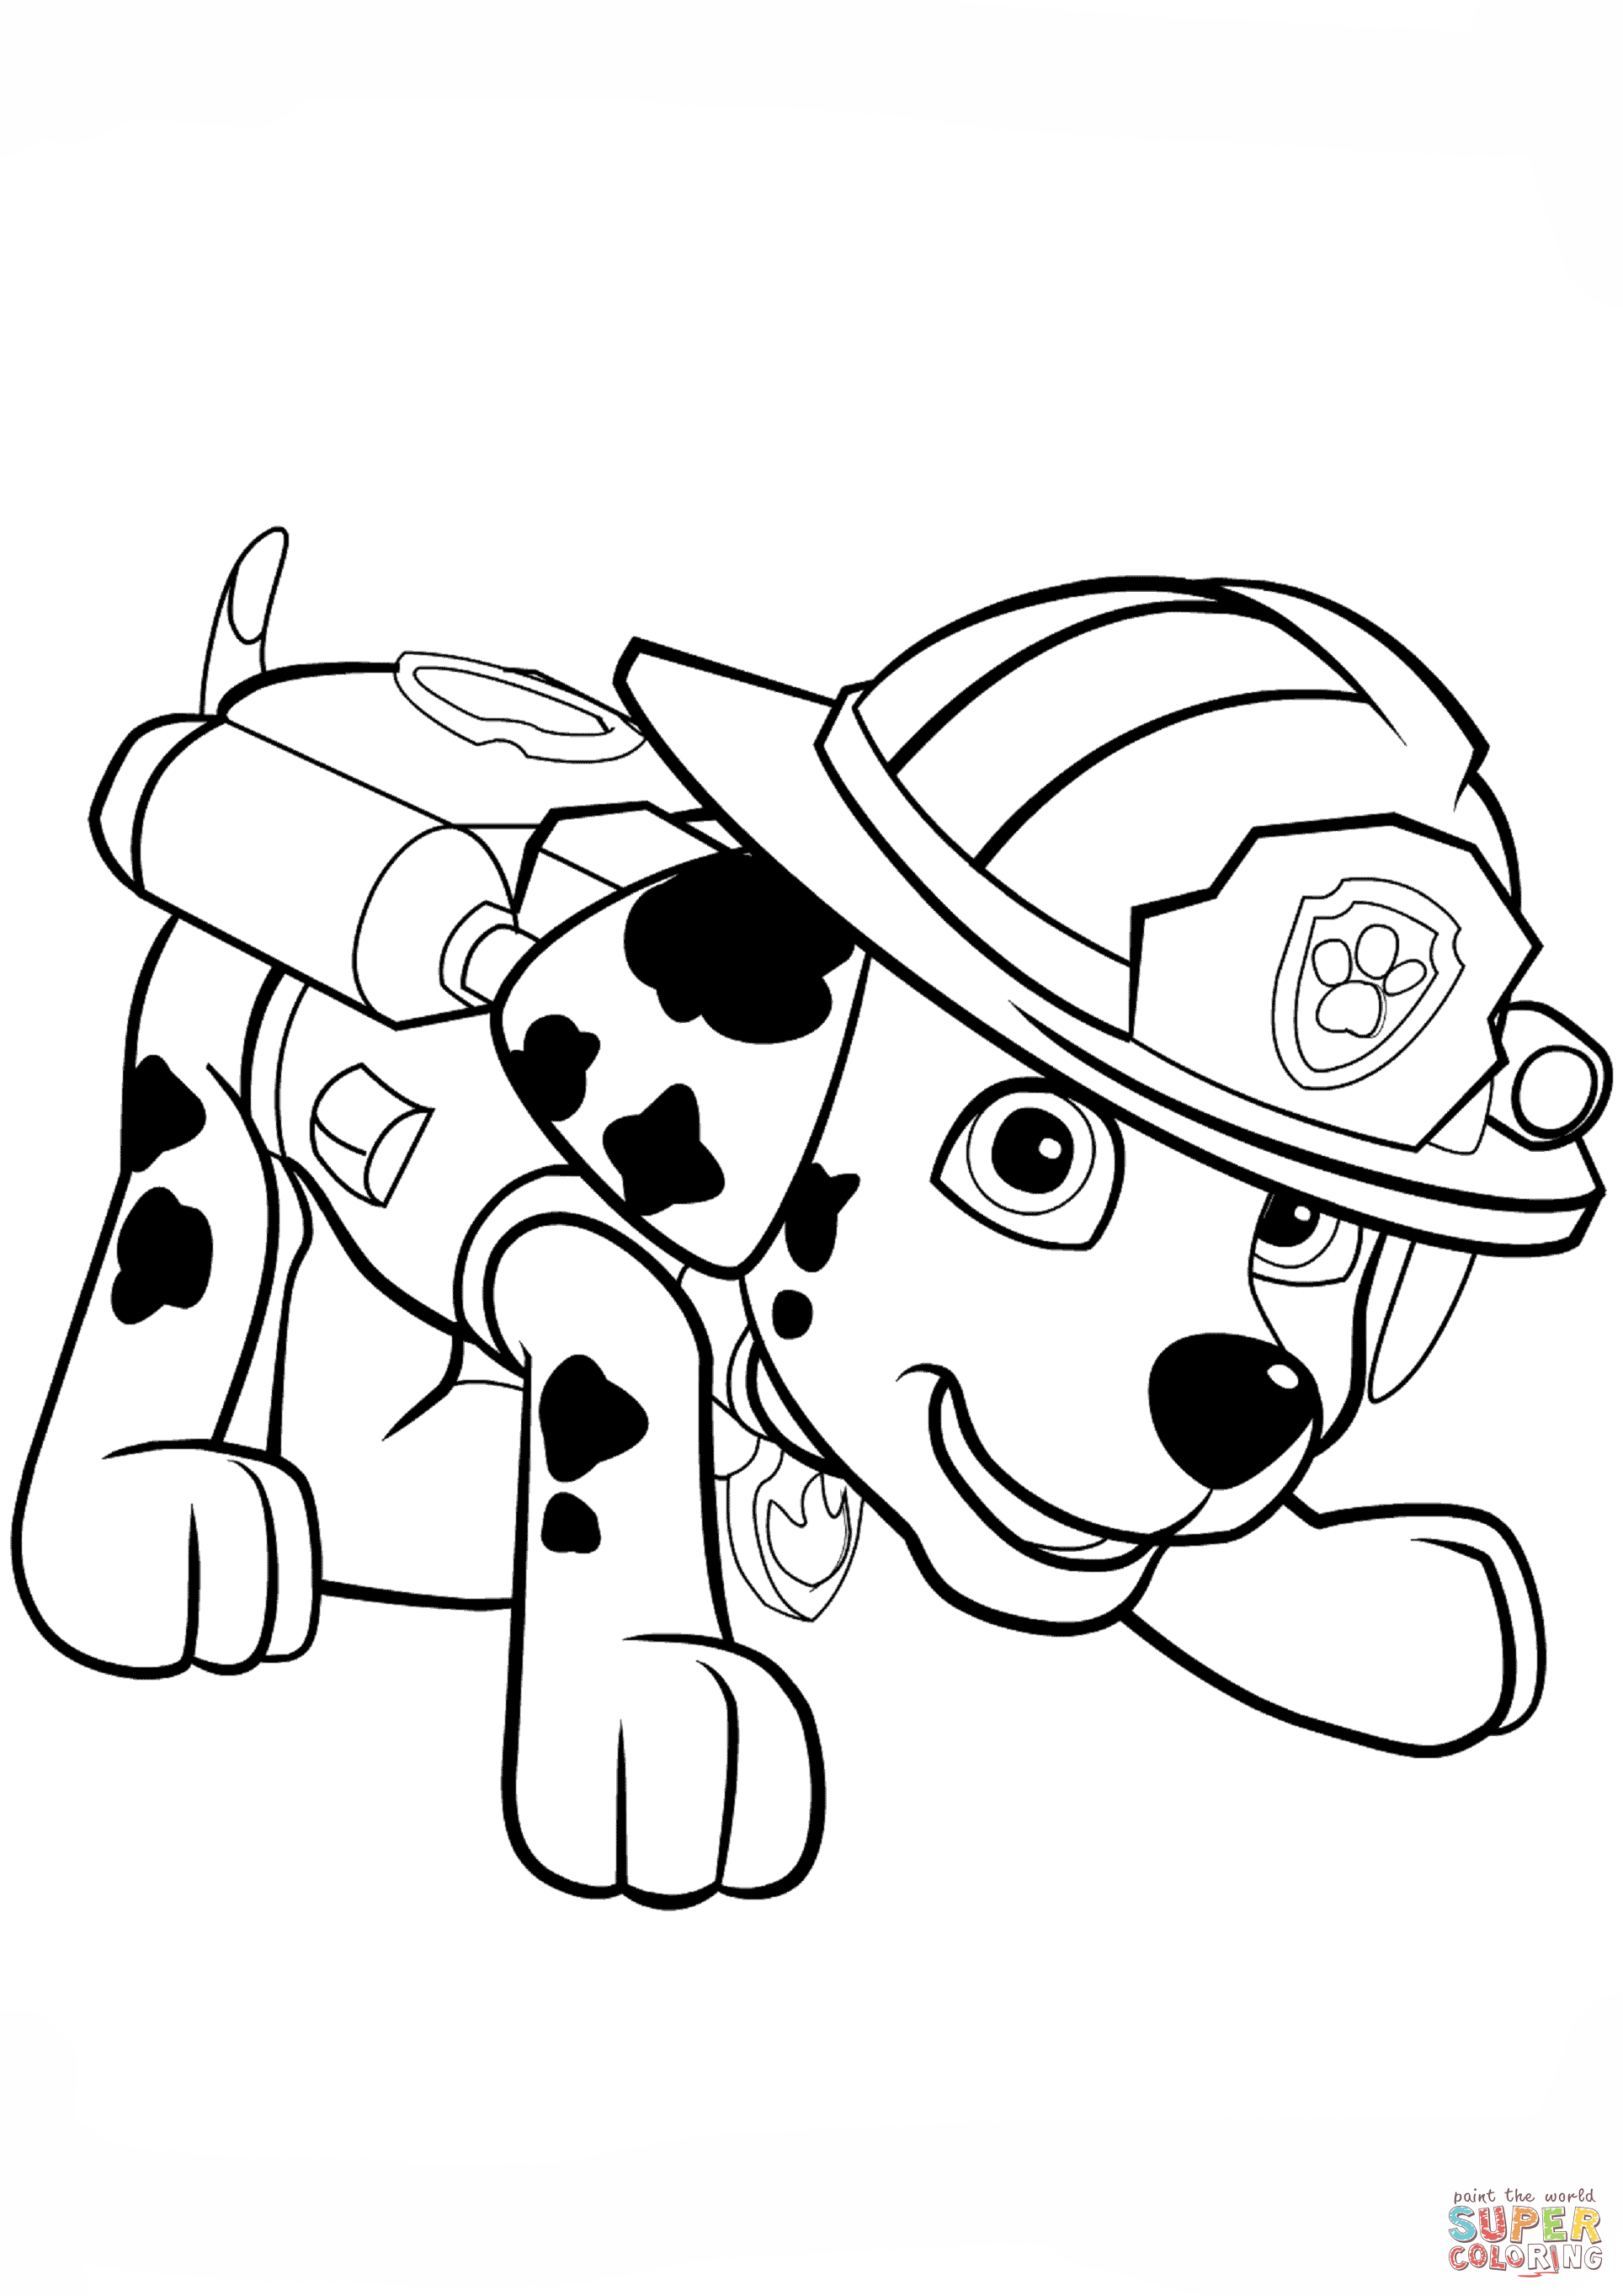 paw patrol tracker coloring pages at getdrawings  free